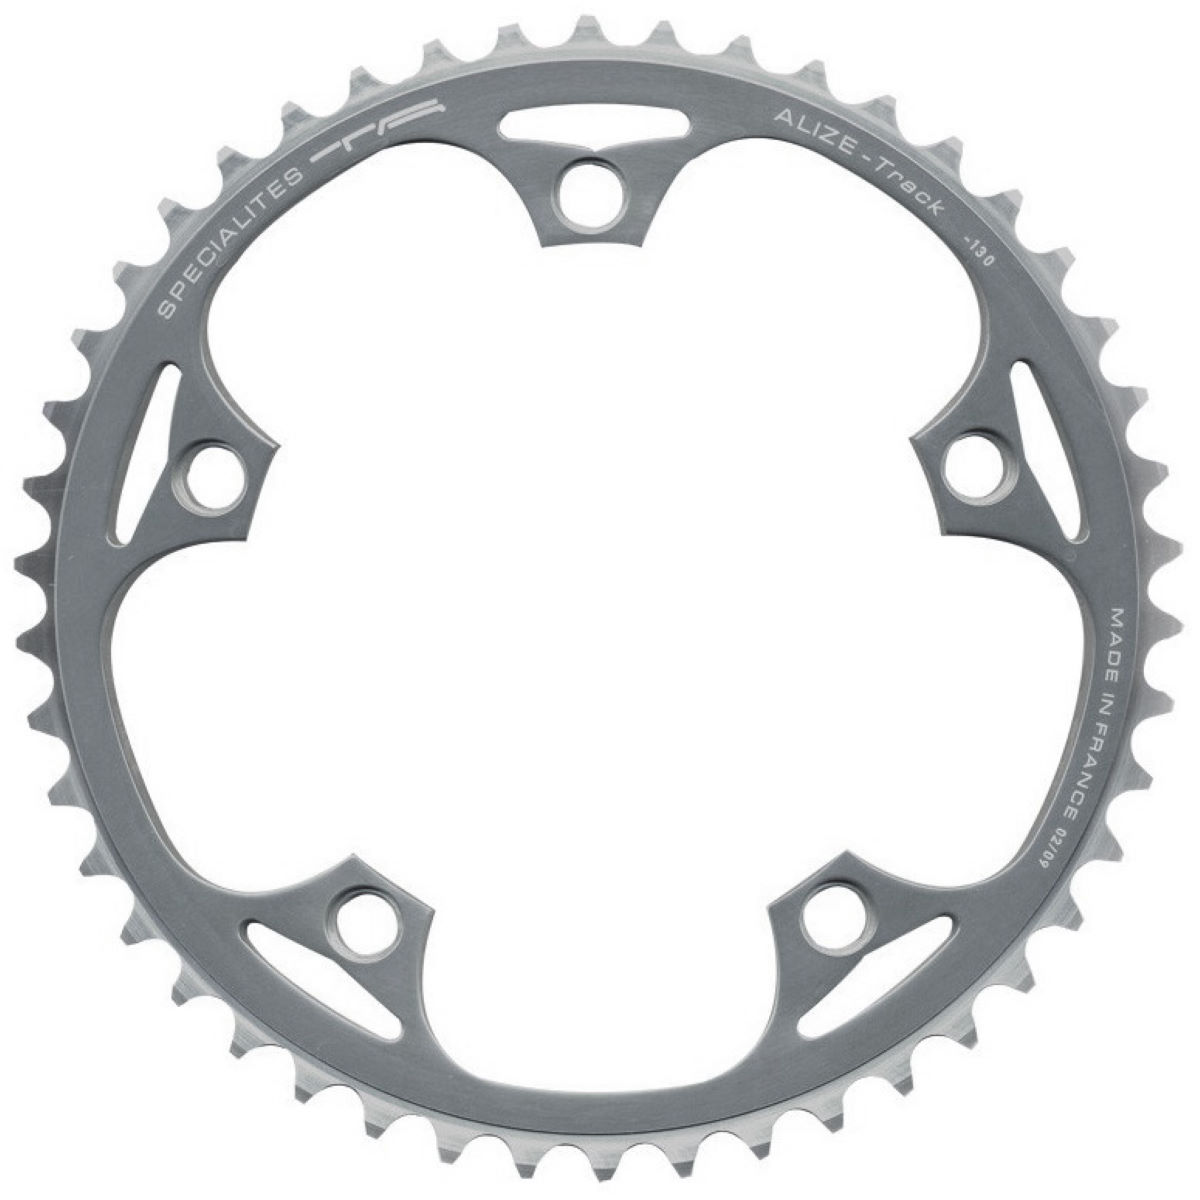 TA TA 130 PCD Shimano Track Outer Chainring (44-49T)   Chain Rings